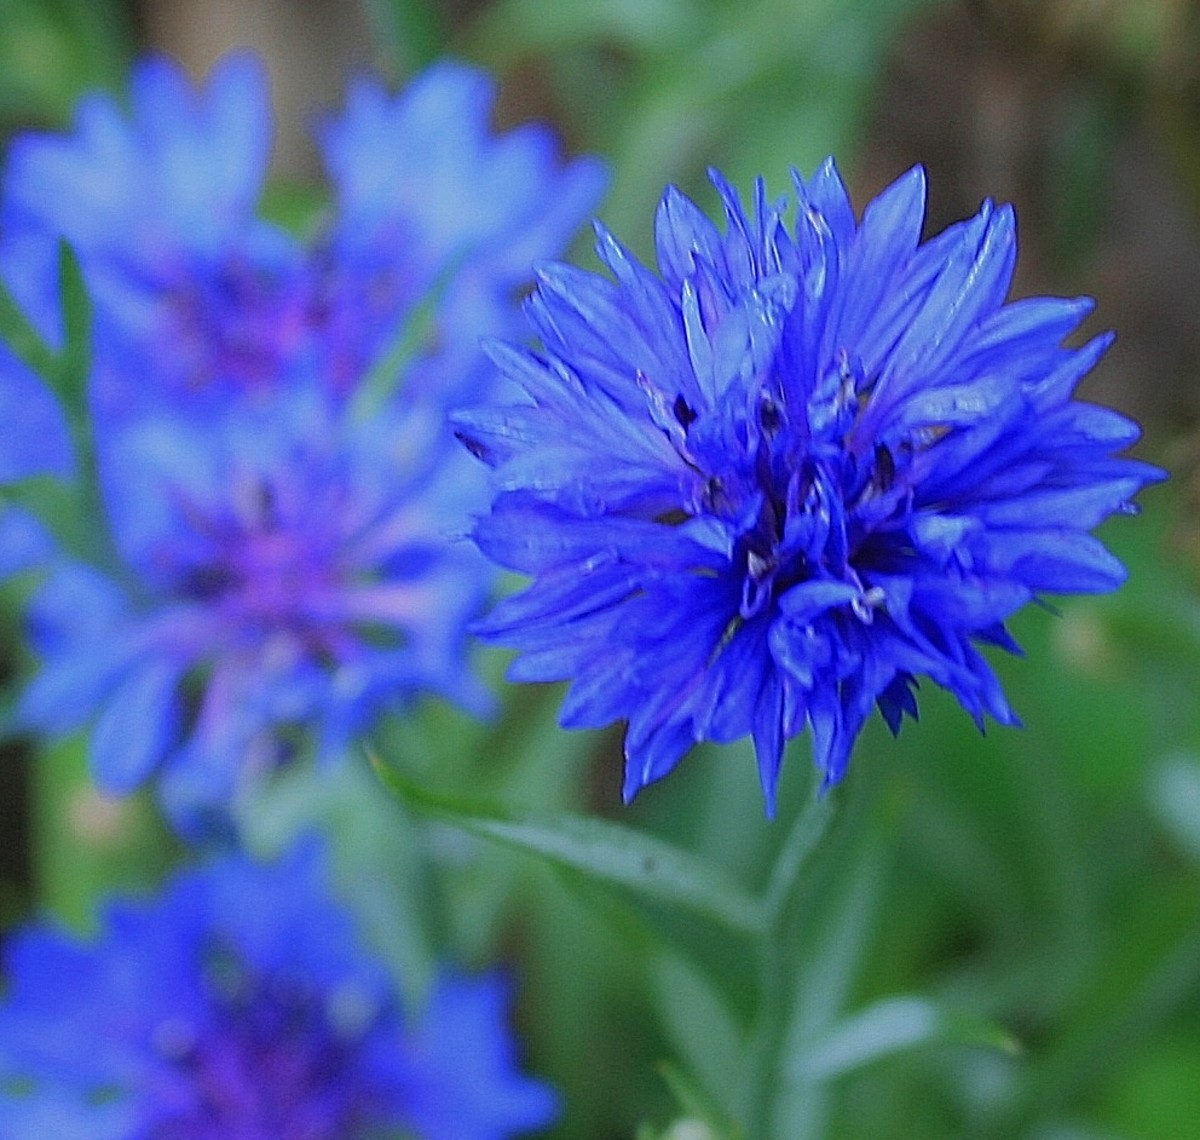 Cornflowers would be a good choice of blue flower for a patriotic flower bed.